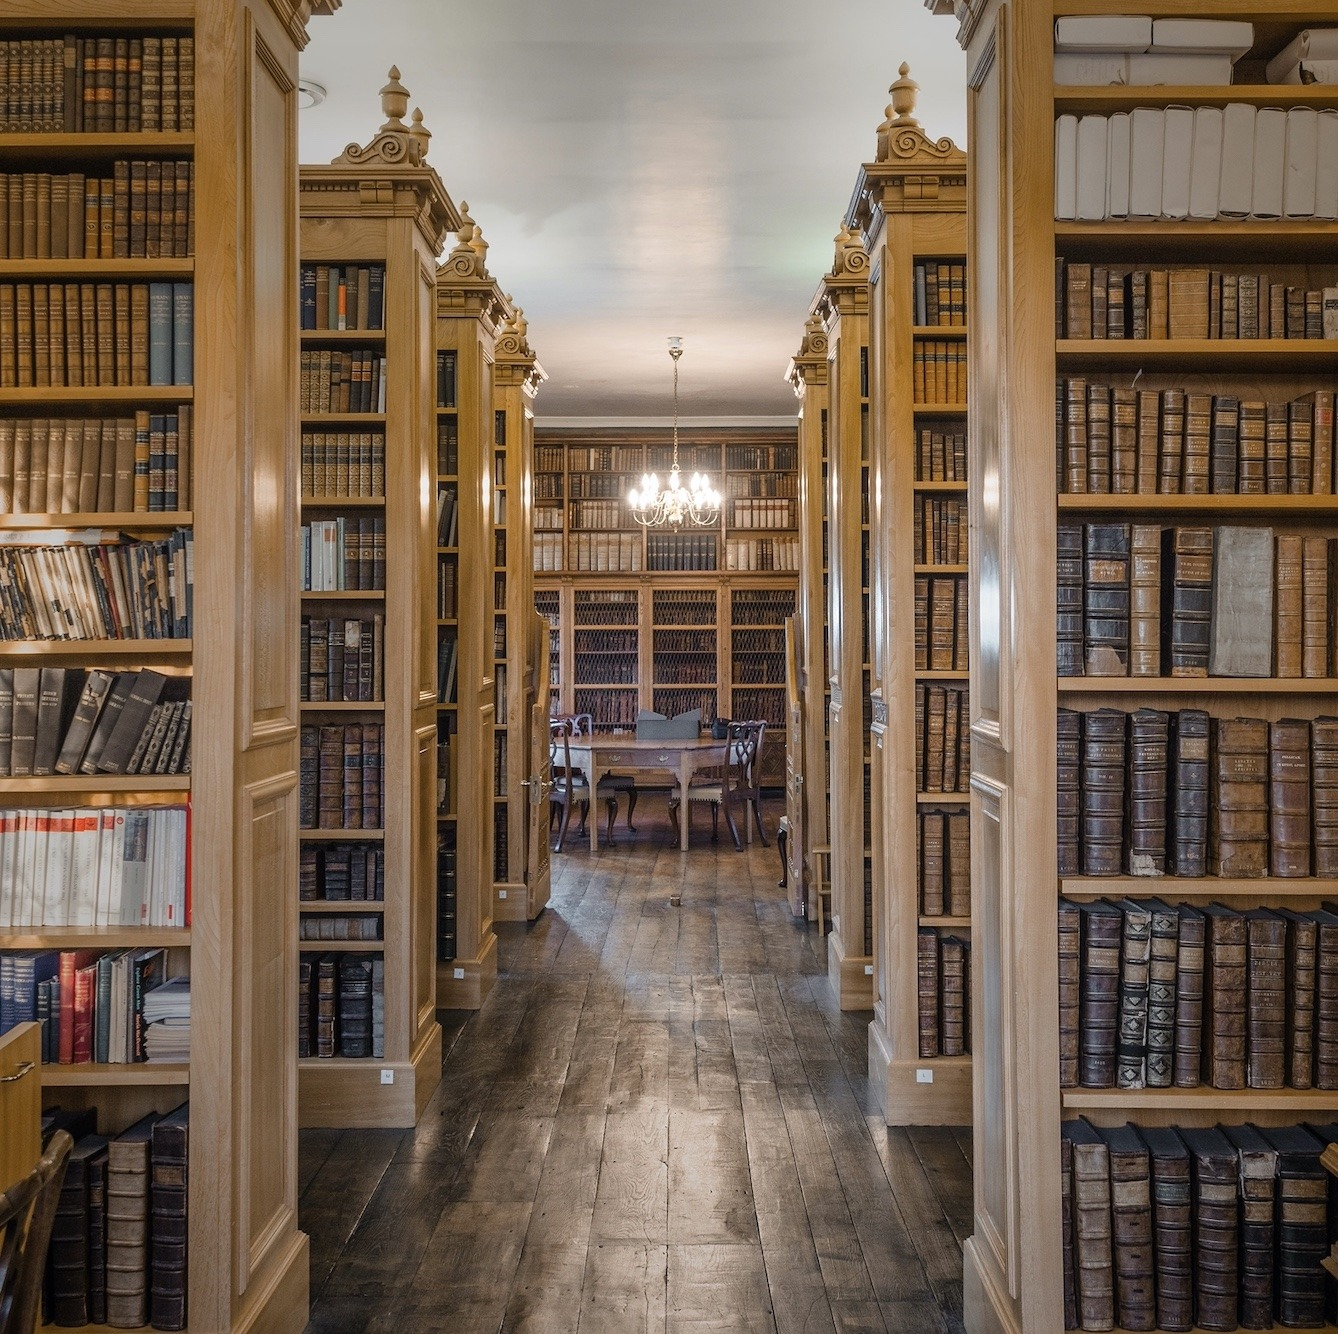 Beyond the library door - salisbury cathedral